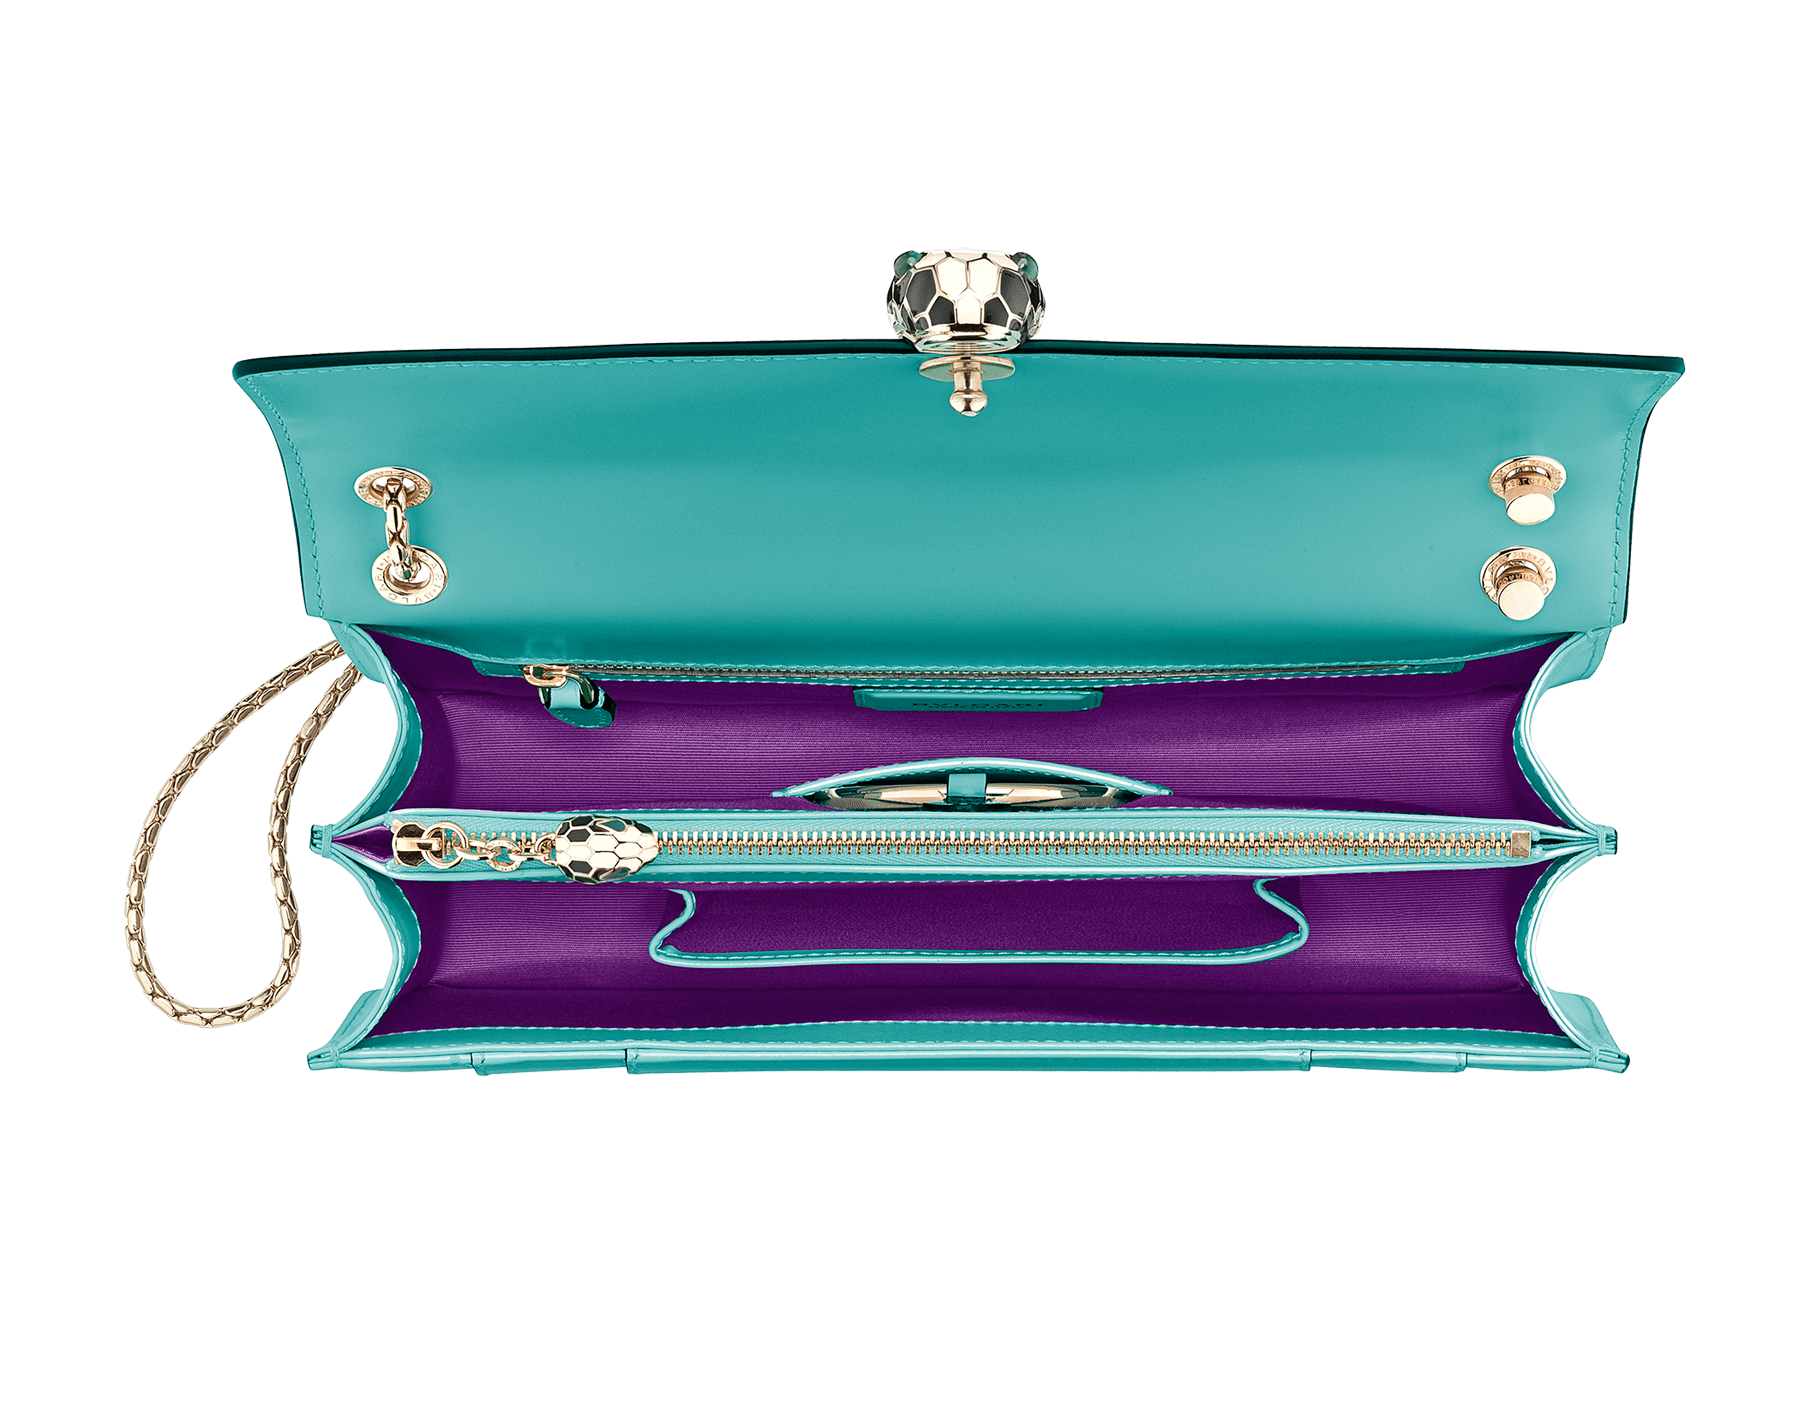 Serpenti Forever shoulder bag in arctic jade calf leather. Iconic snakehead closure in light gold plated brass embellished with black and white enamel and green malachite eyes. 288701 image 4